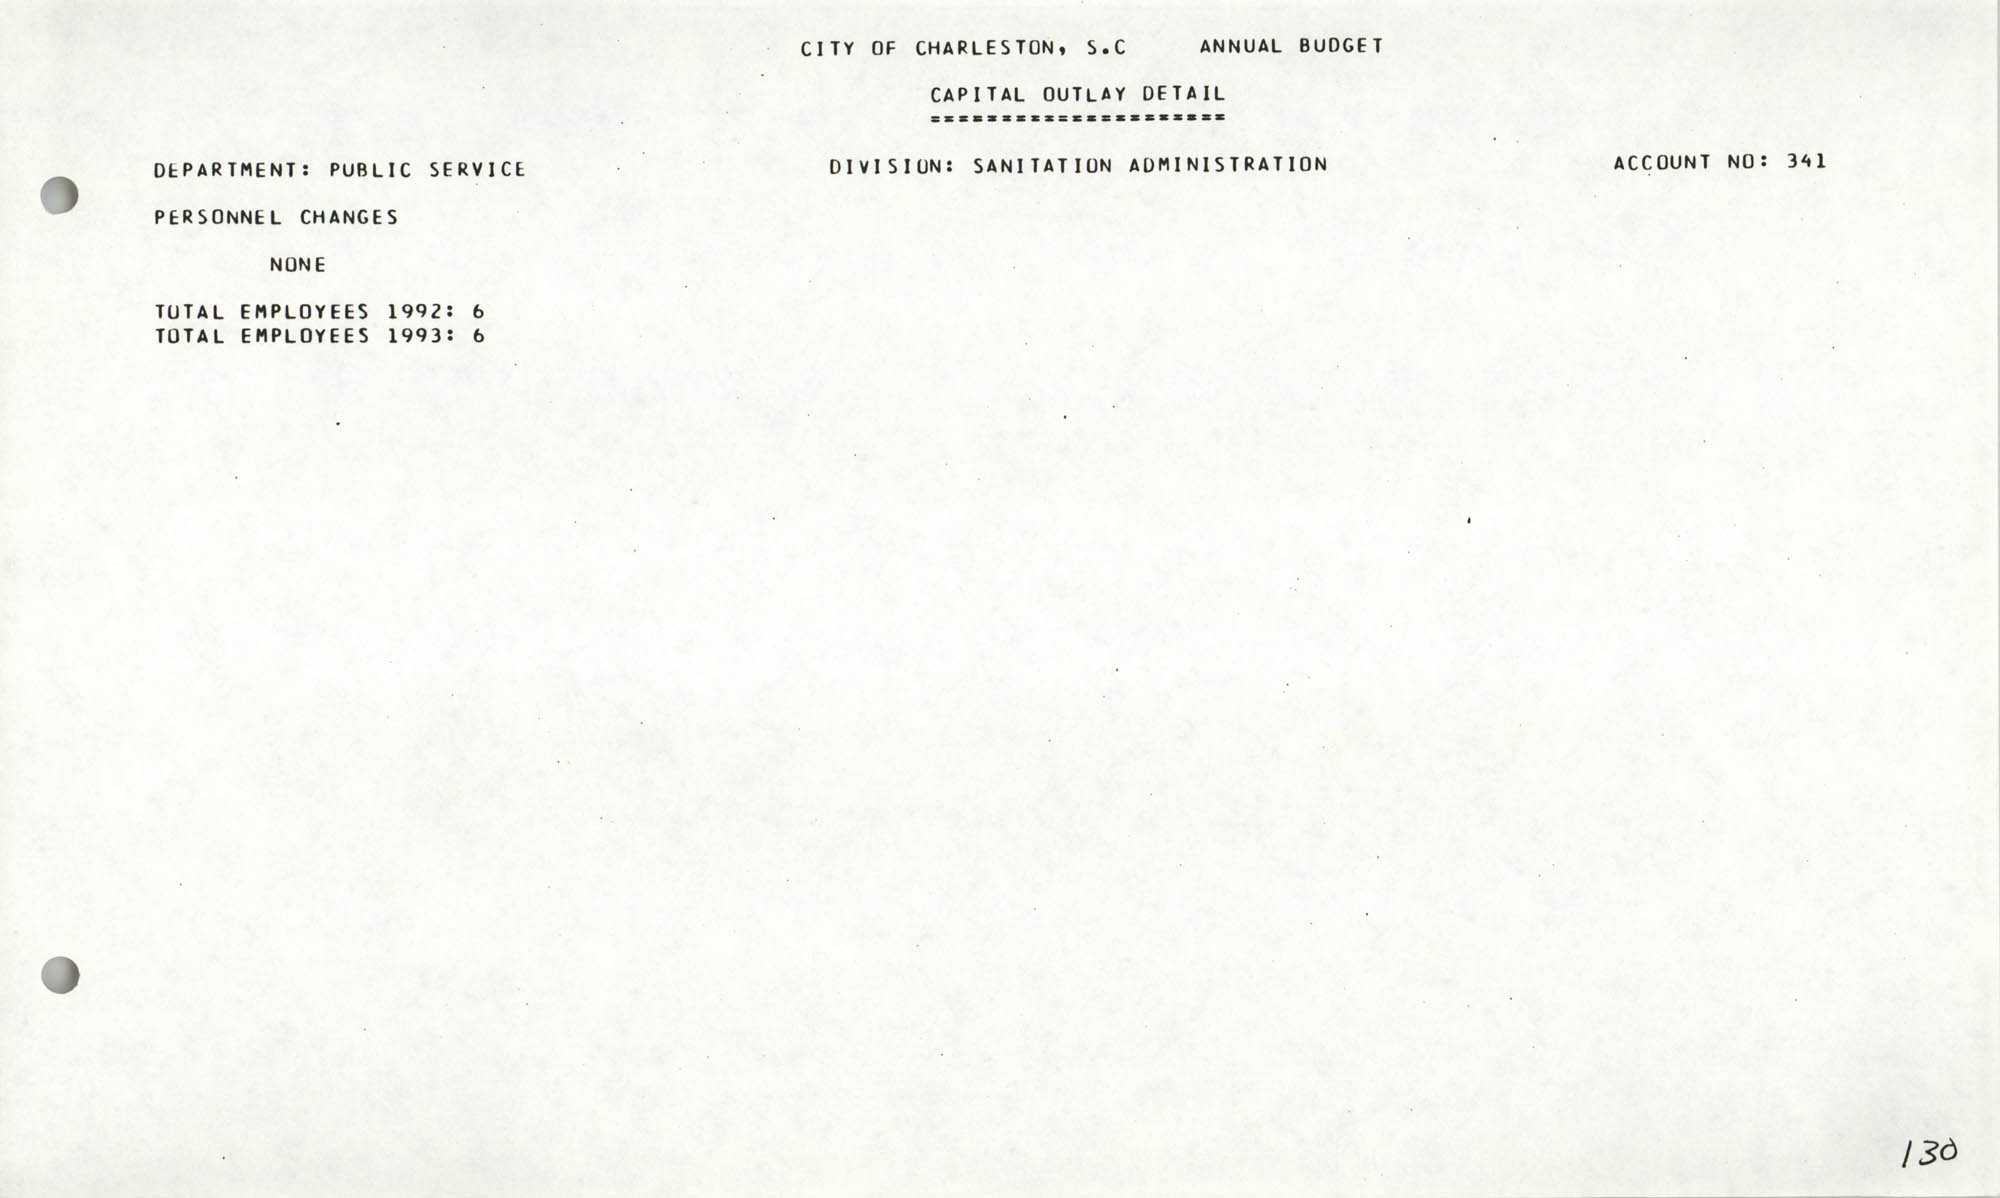 The City Council of Charleston, South Carolina, 1993 Budget, Page 130